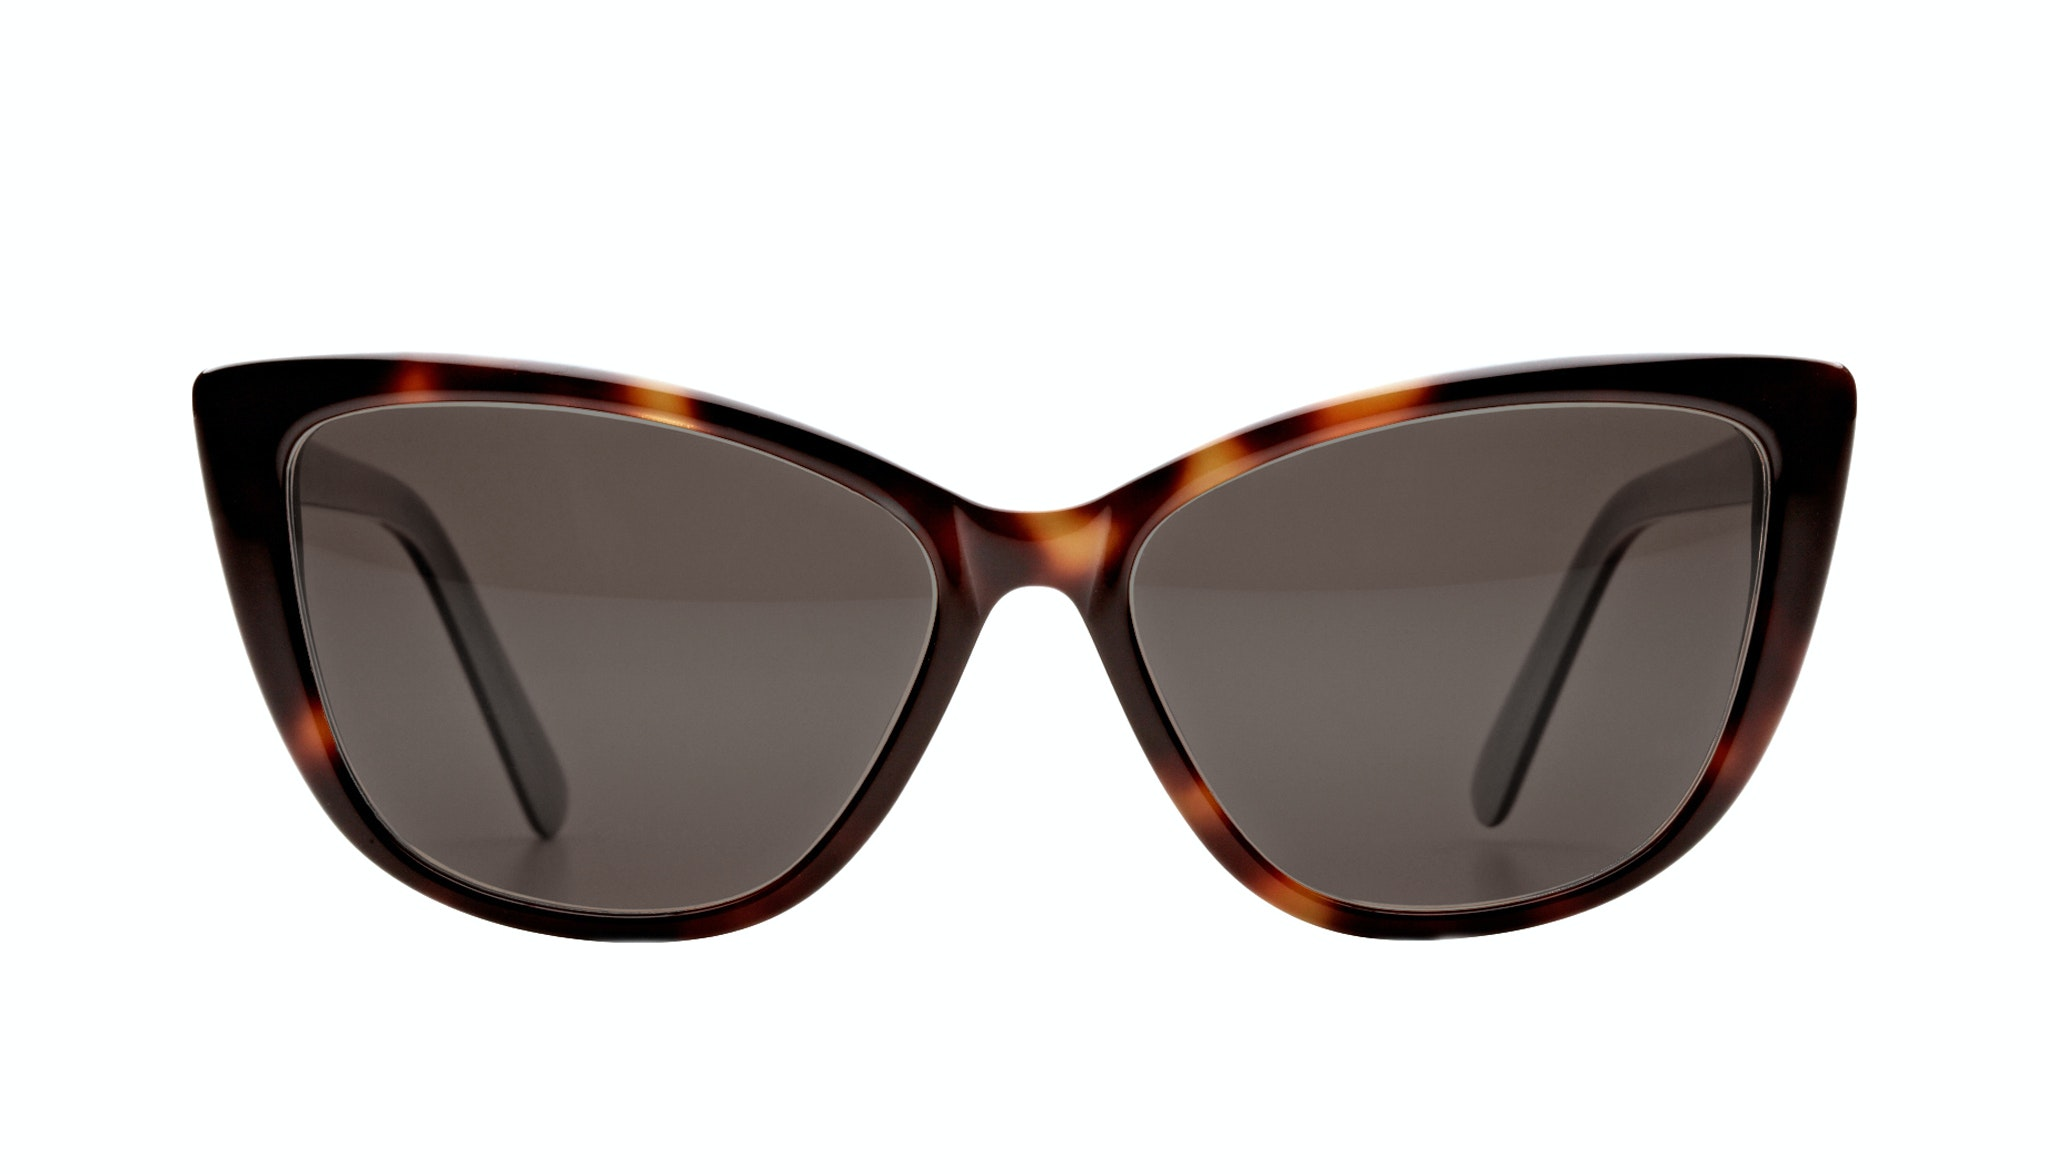 Affordable Fashion Glasses Cat Eye Sunglasses Women Dolled Up Dreamy Tortoise Front